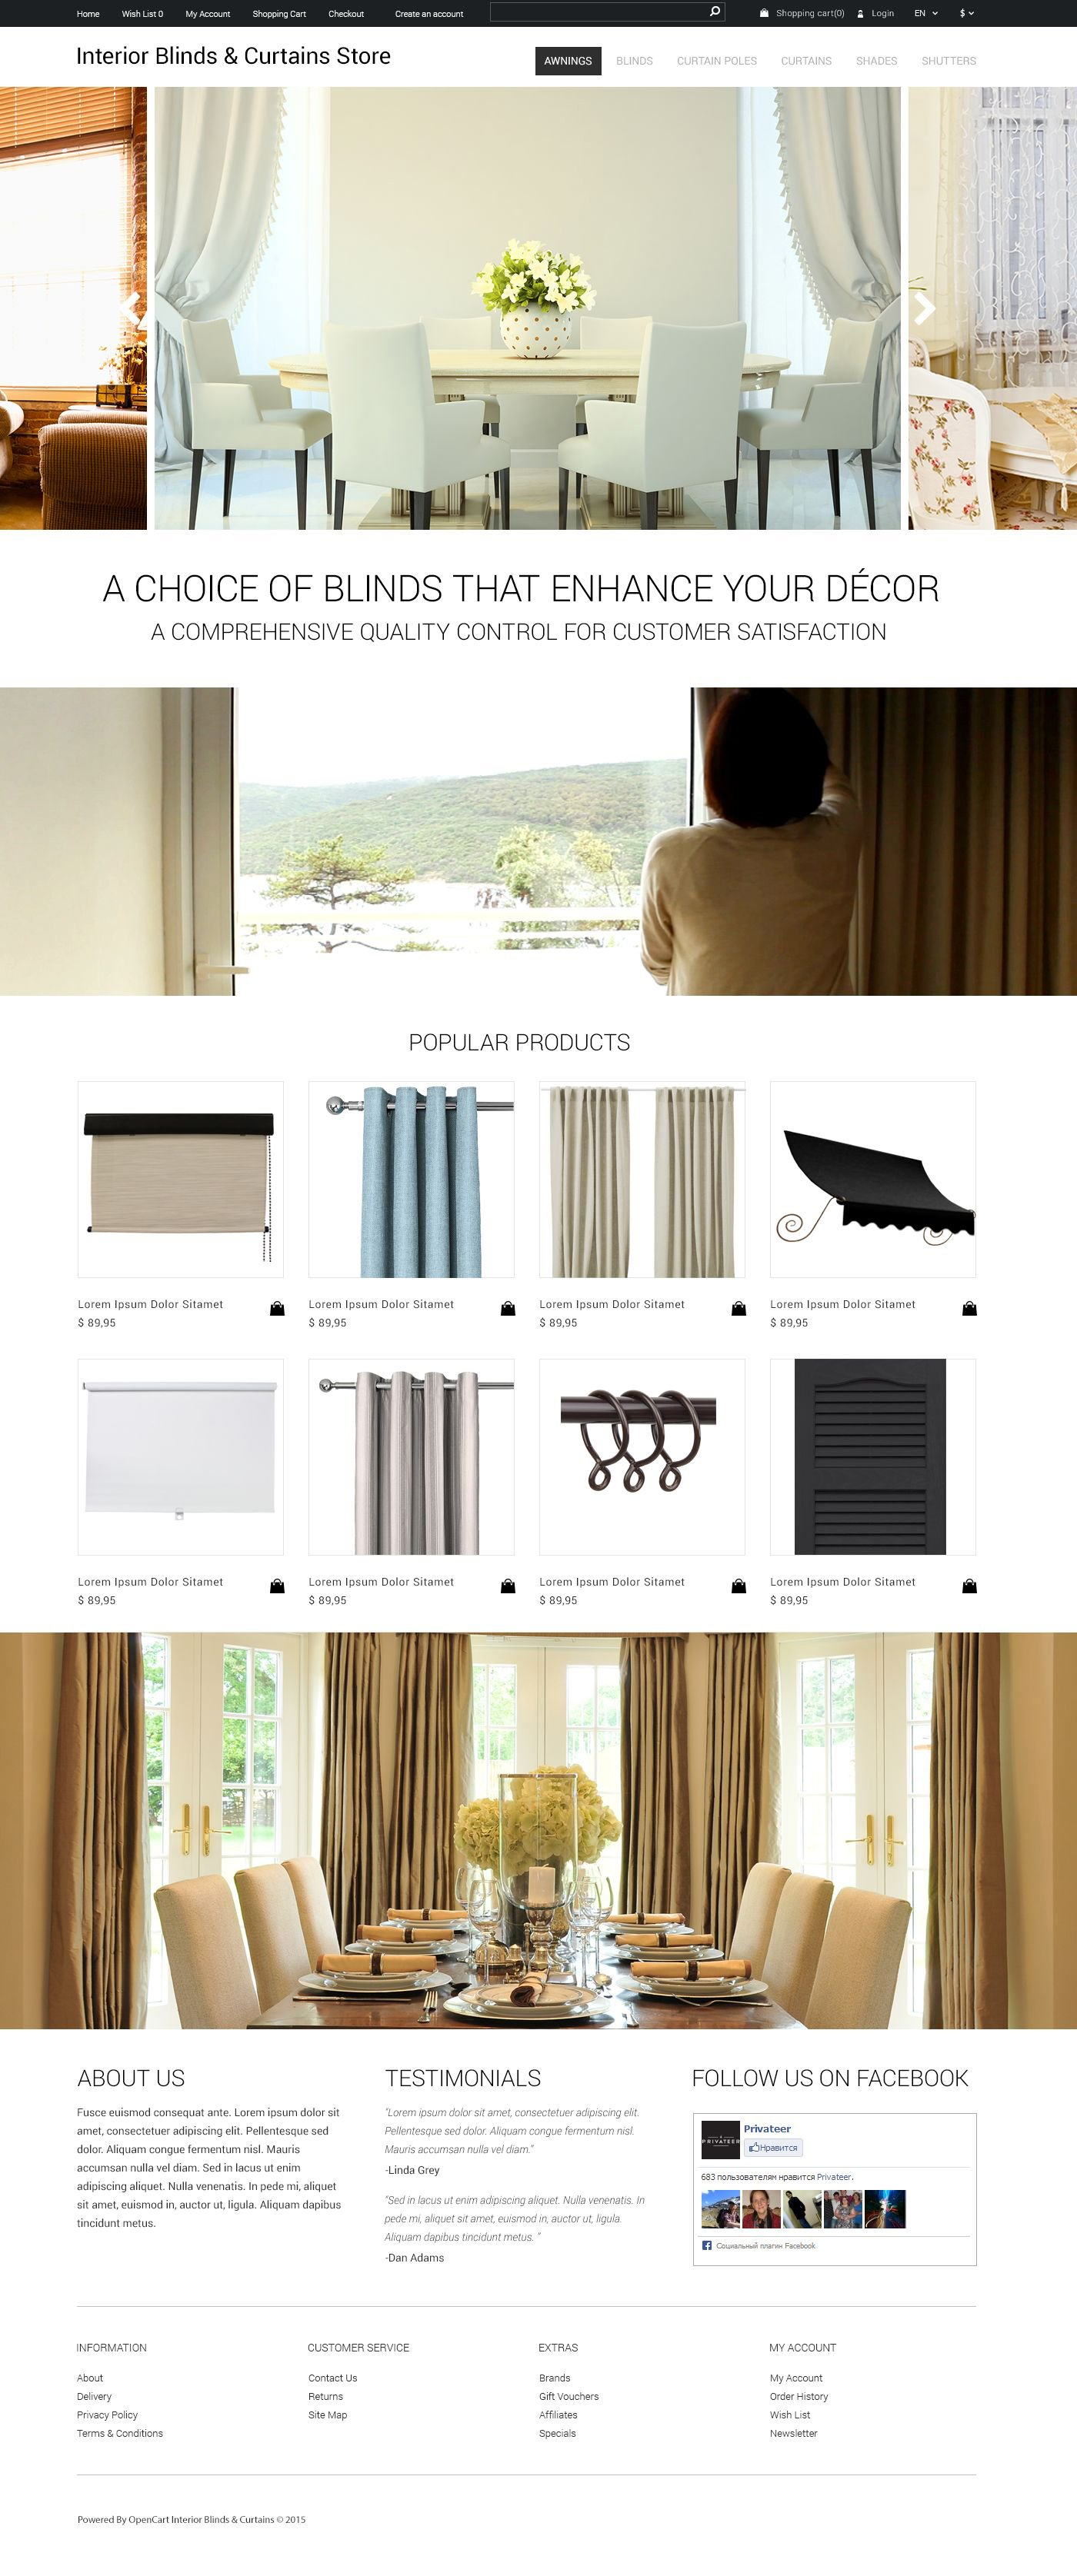 The Interior Blinds & Curtains Store Curtains OpenCart Design 53256, one of the best OpenCart templates of its kind (interior & furniture, most popular), also known as Interior Blinds & Curtains Store curtains OpenCart template, blinds OpenCart template, and wood OpenCart template, venetian OpenCart template, window-blind OpenCart template, shutters OpenCart template, roller OpenCart template, shopping cart store OpenCart template, shop OpenCart template, servicescurtais and related with Interior Blinds & Curtains Store curtains, blinds, and wood, venetian, window-blind, shutters, roller, shopping cart store, shop, servicescurtais, etc.